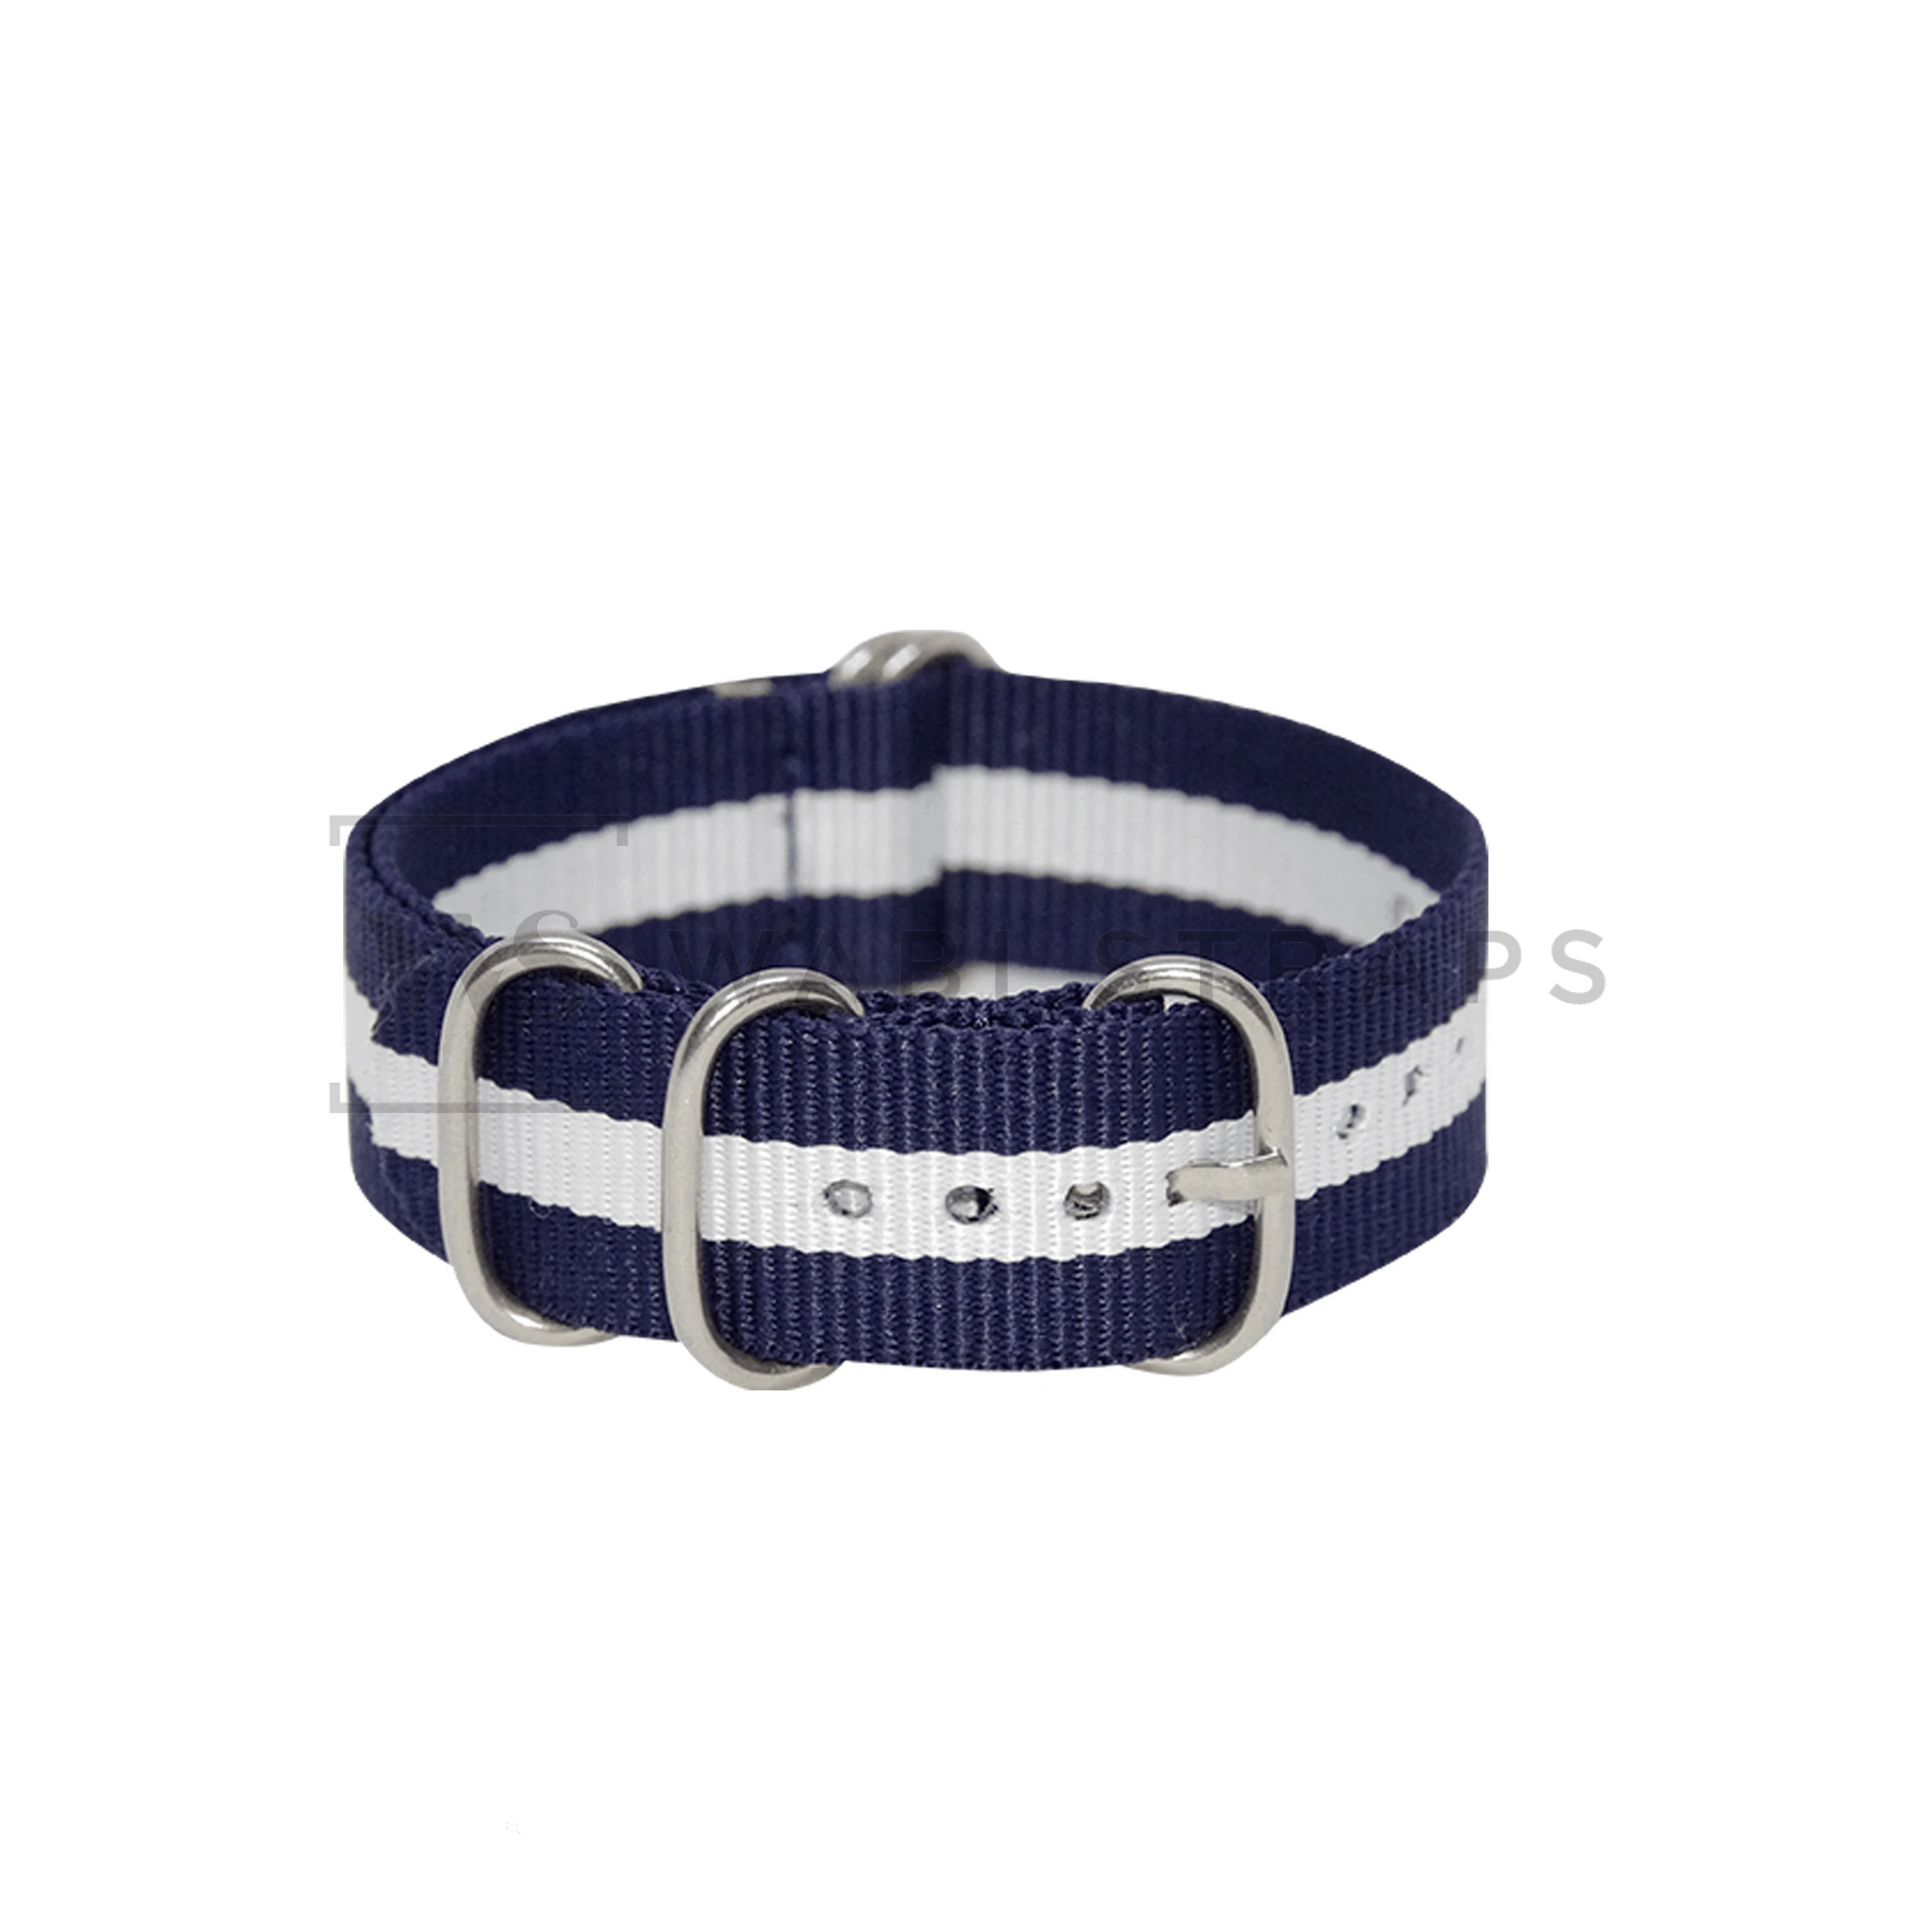 Blue & White Striped ZULU Strap Round